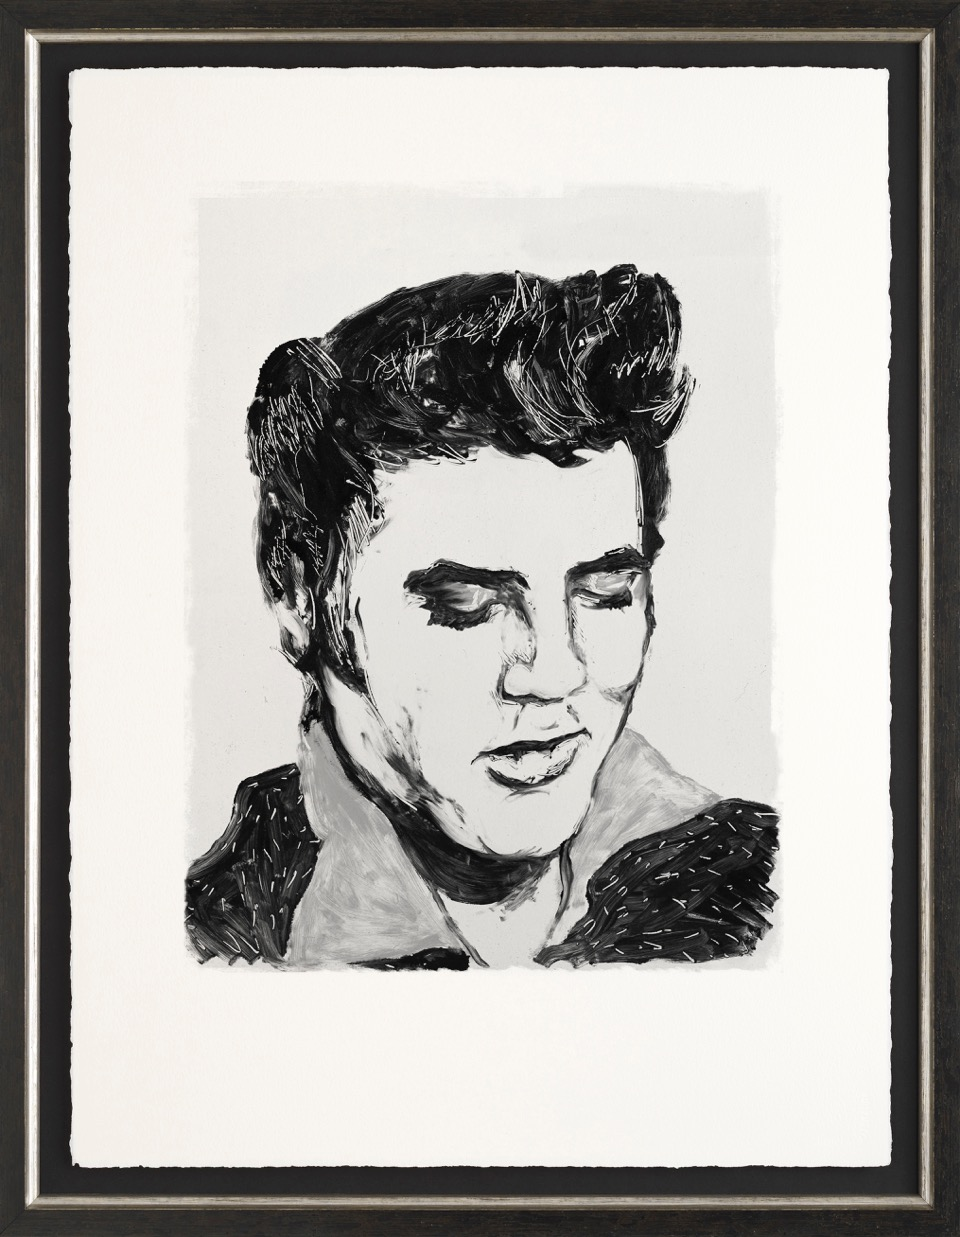 Elvis by Ronnie Wood, Music | Nostalgic | Portrait | Figurative